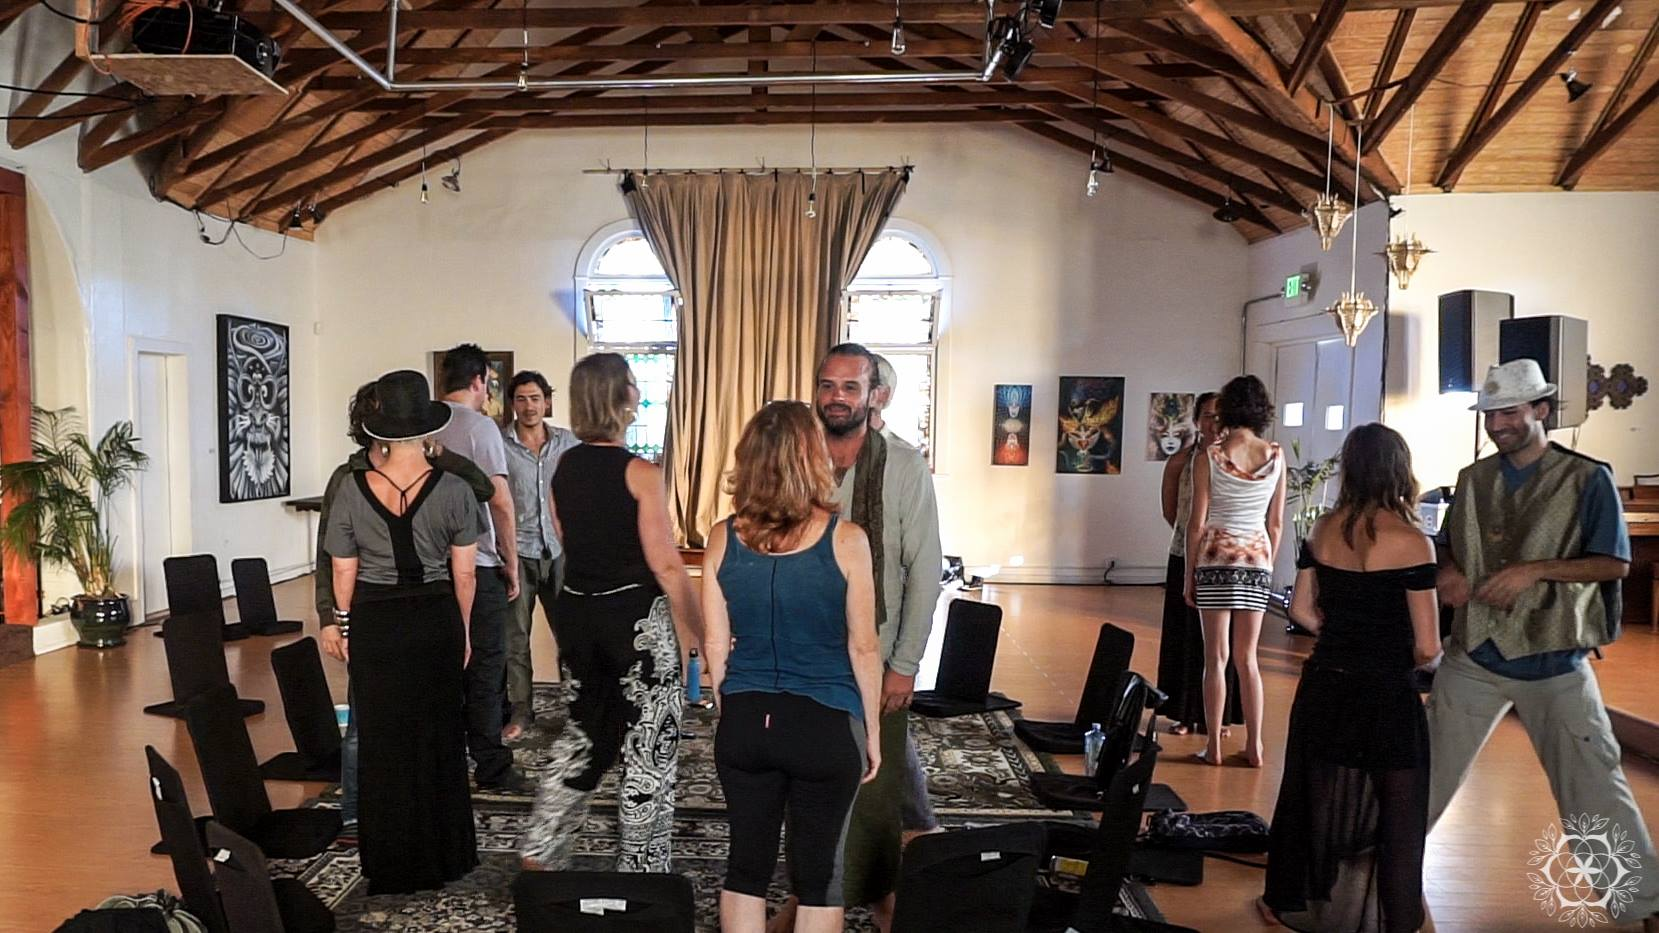 An activation in 2015 for the leadership team and stakeholders at Full Circle in  Venice, CA     Activations facilitate dialog in dynamic ways including mapping, partner work, small groups, panels, interviews etc.